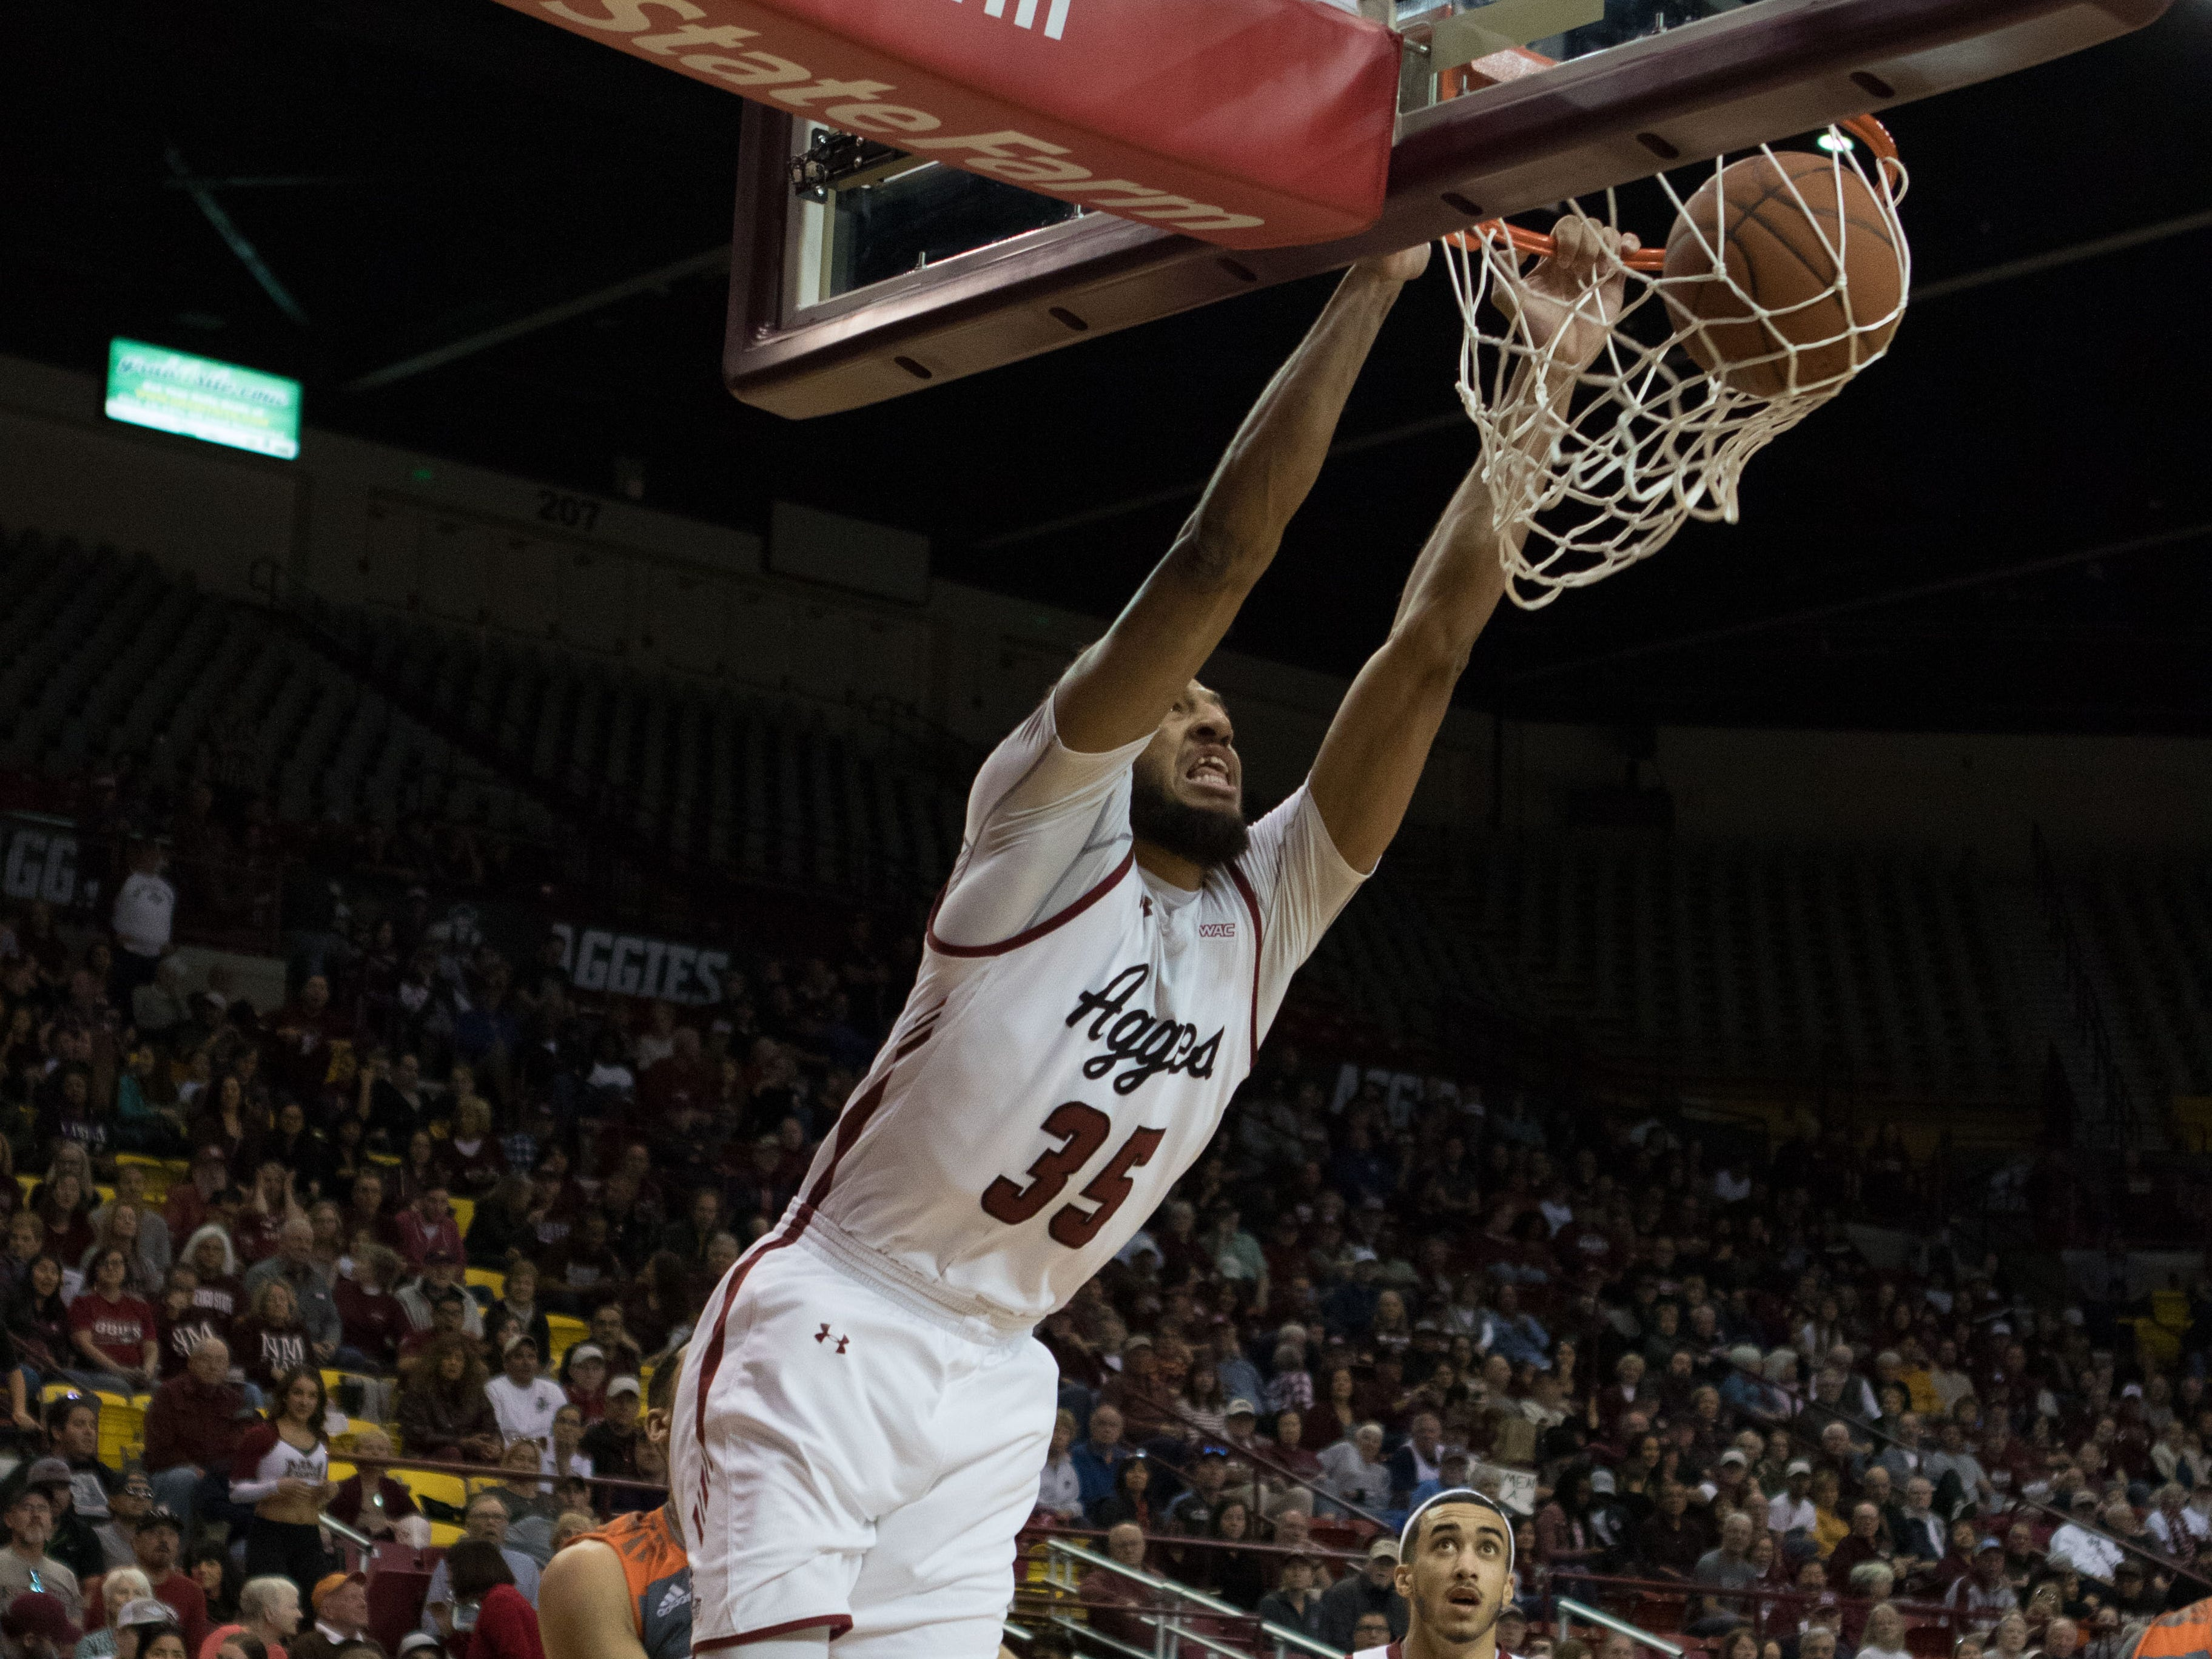 New Mexico Staet's Johnny McCants puts in one of his signature  dunks against Texas Rio Grande Valley on Saturday at the Pan American Center.